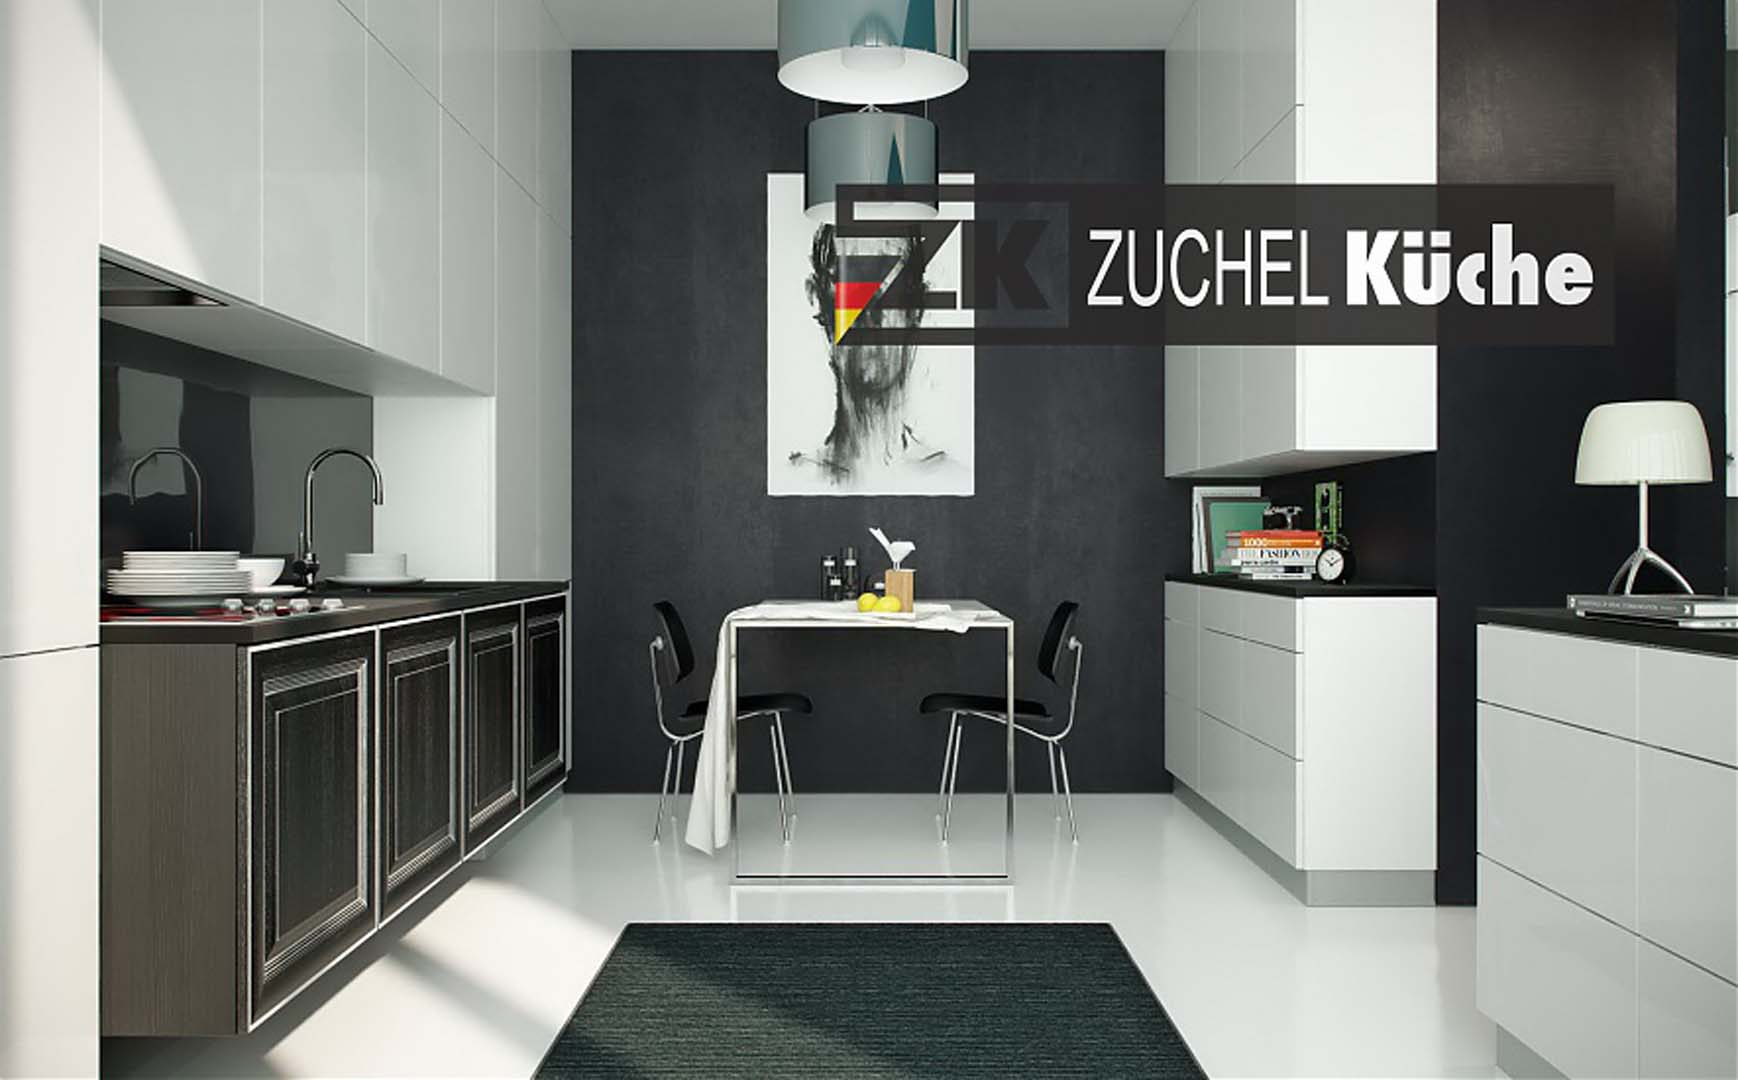 kchen magdeburg elegant angebote der aktuellen woche with kchen magdeburg free warendorf kchen. Black Bedroom Furniture Sets. Home Design Ideas